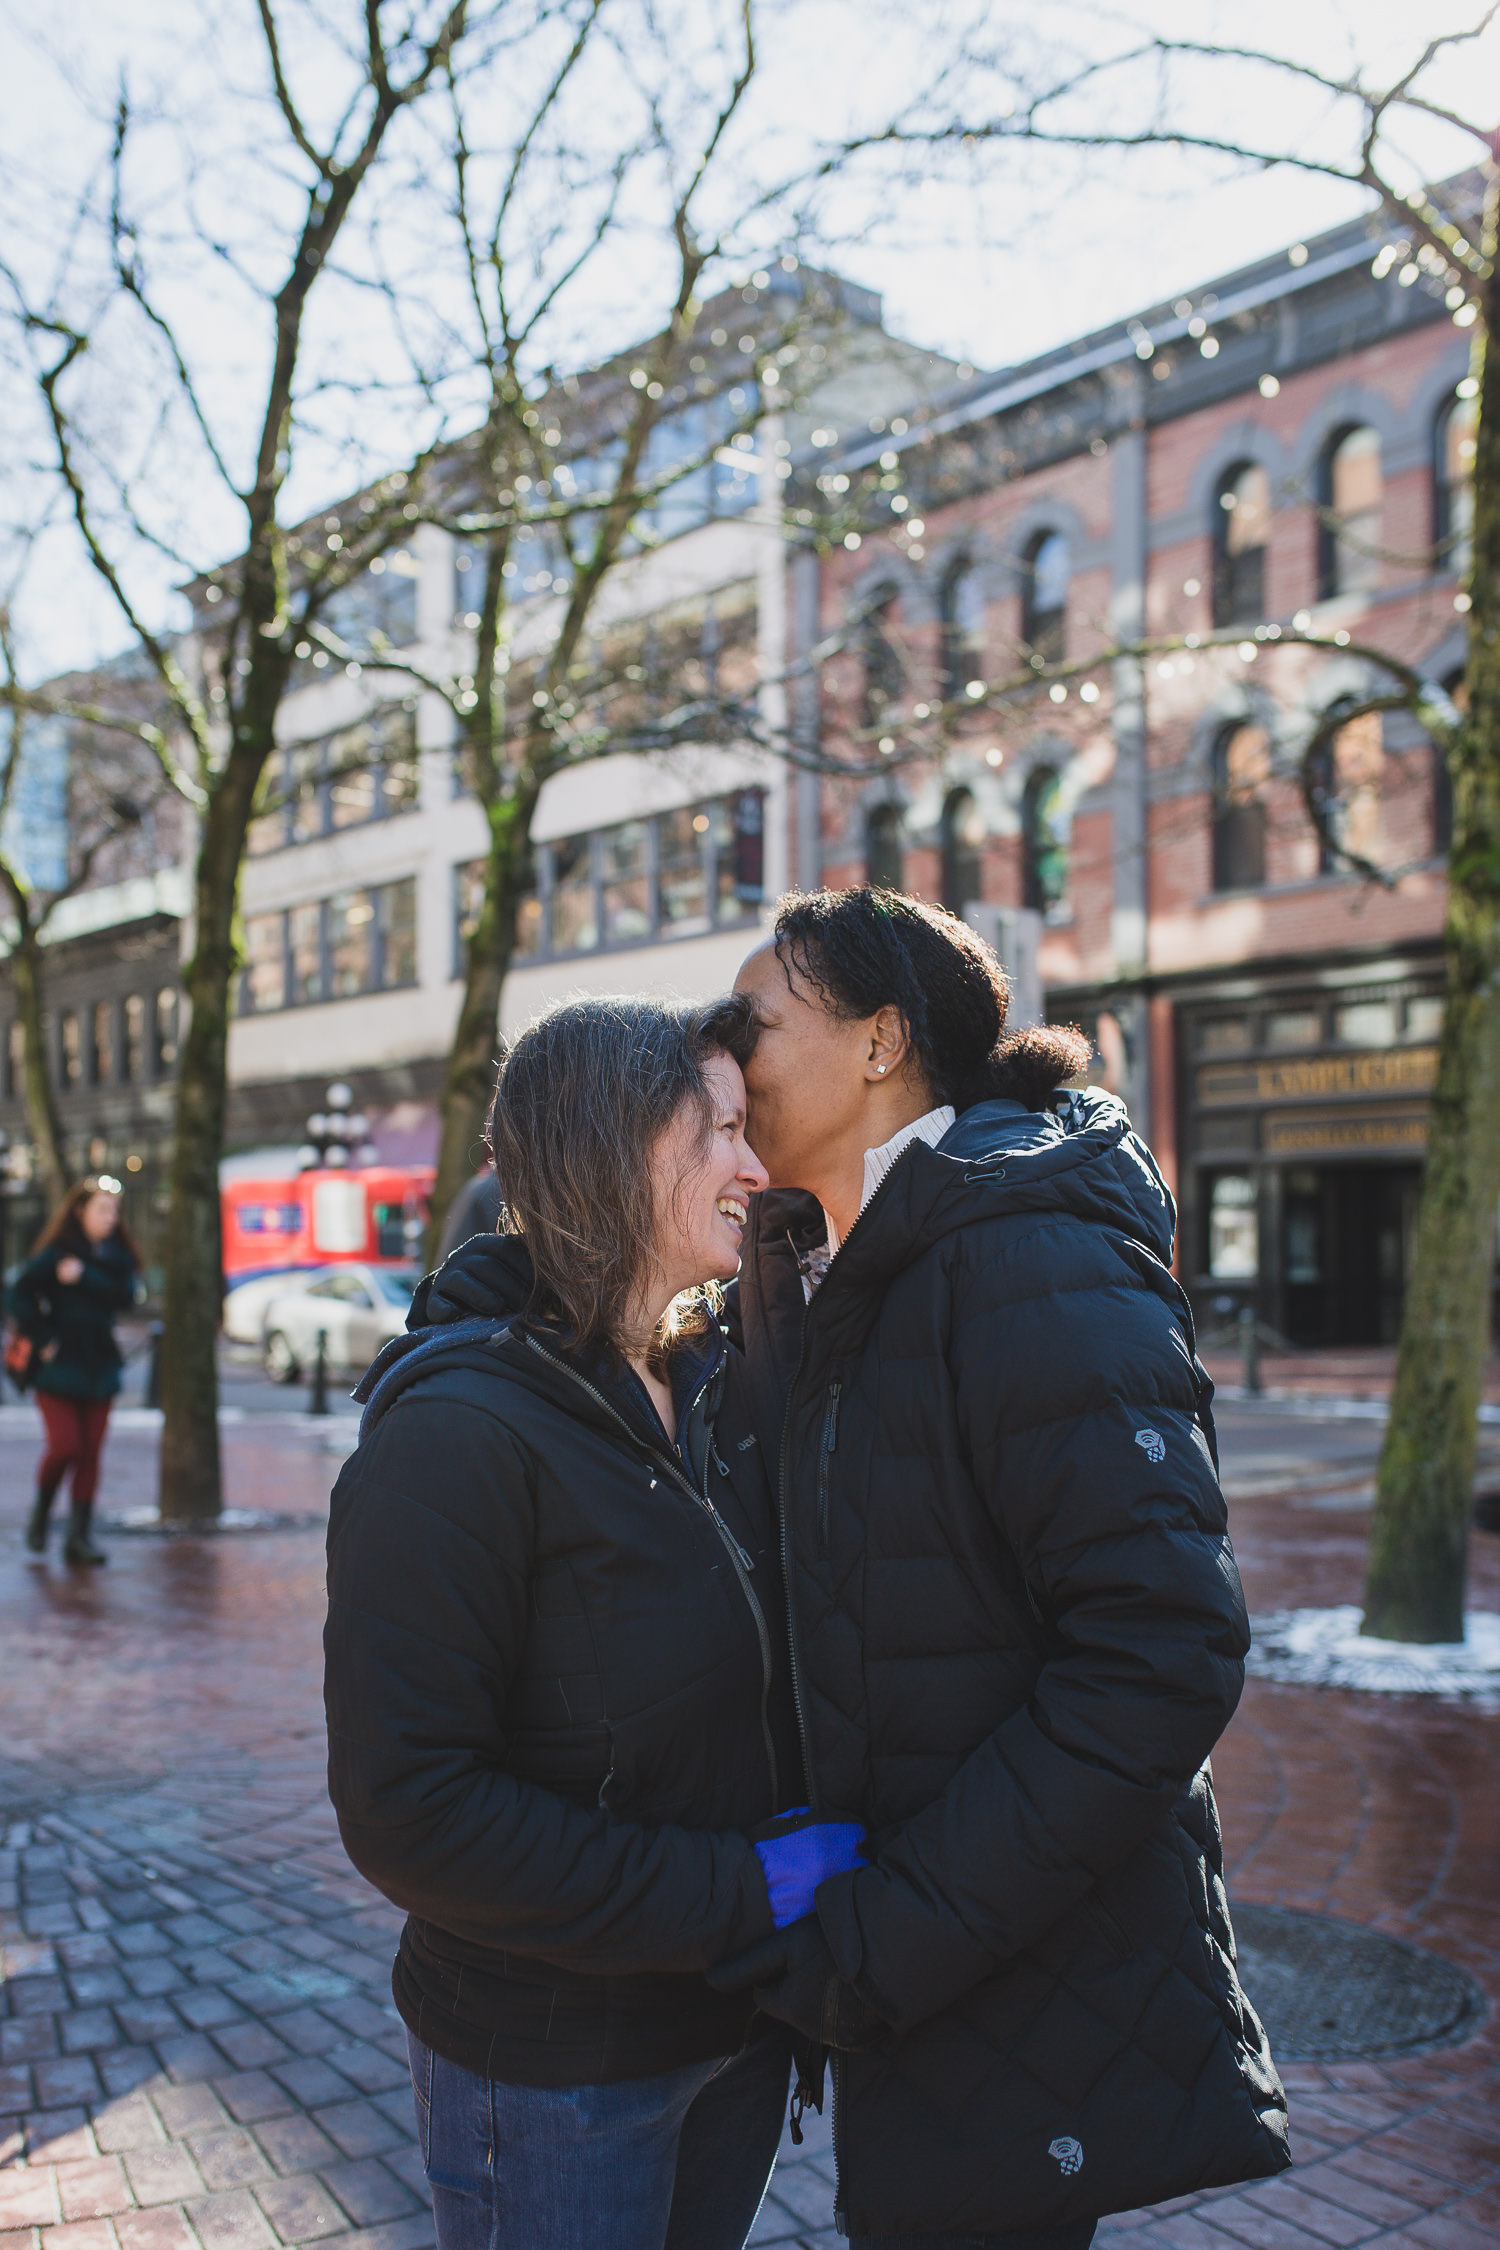 lgbtq couple on gastown street in vancouver